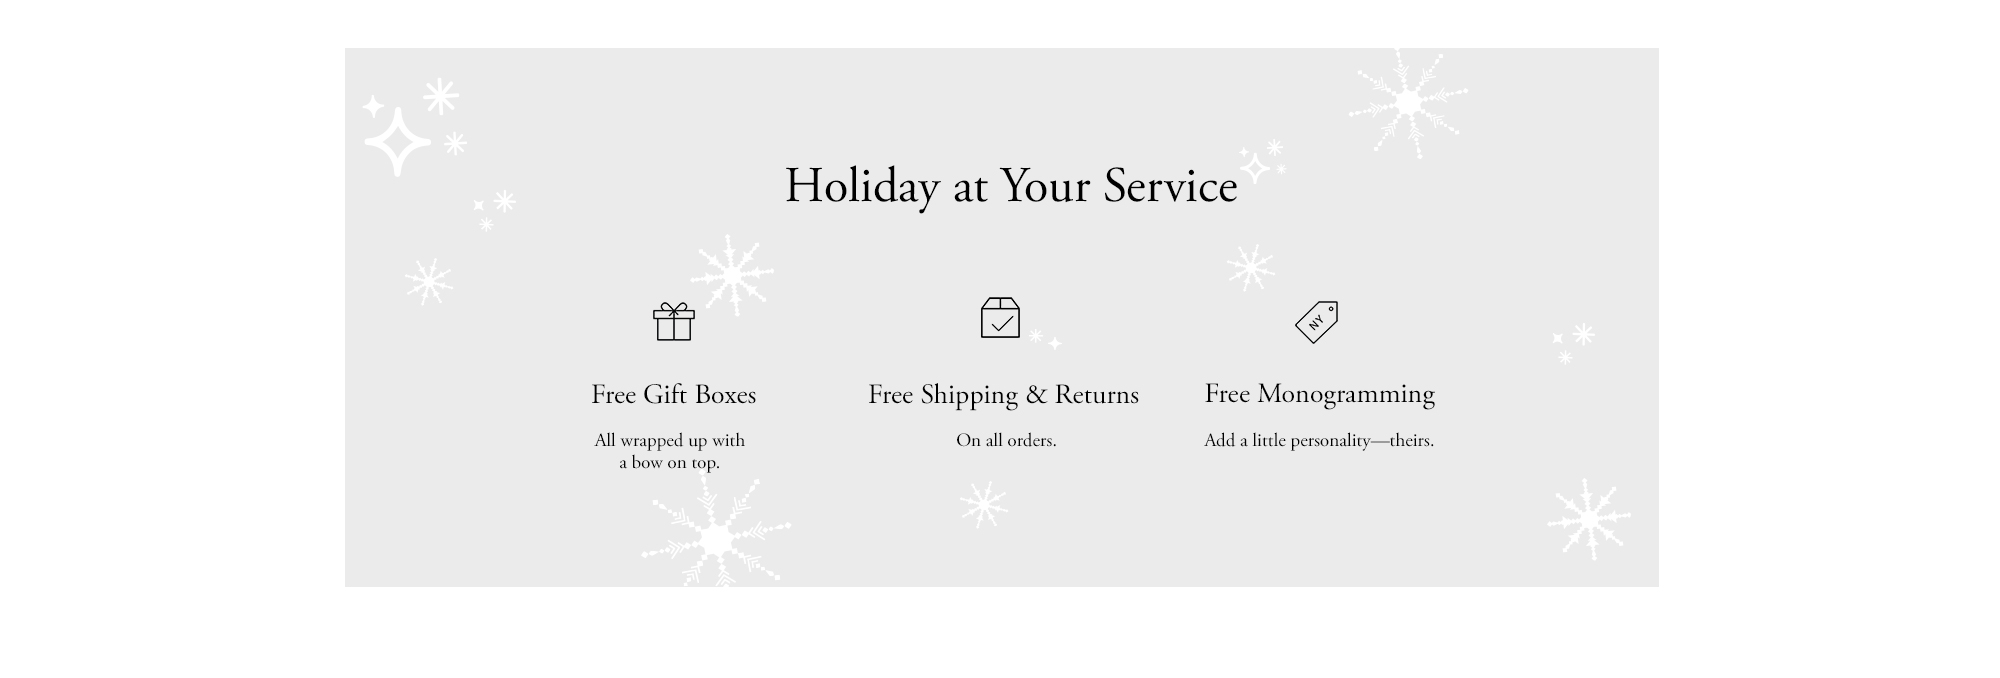 Holiday At Your Service